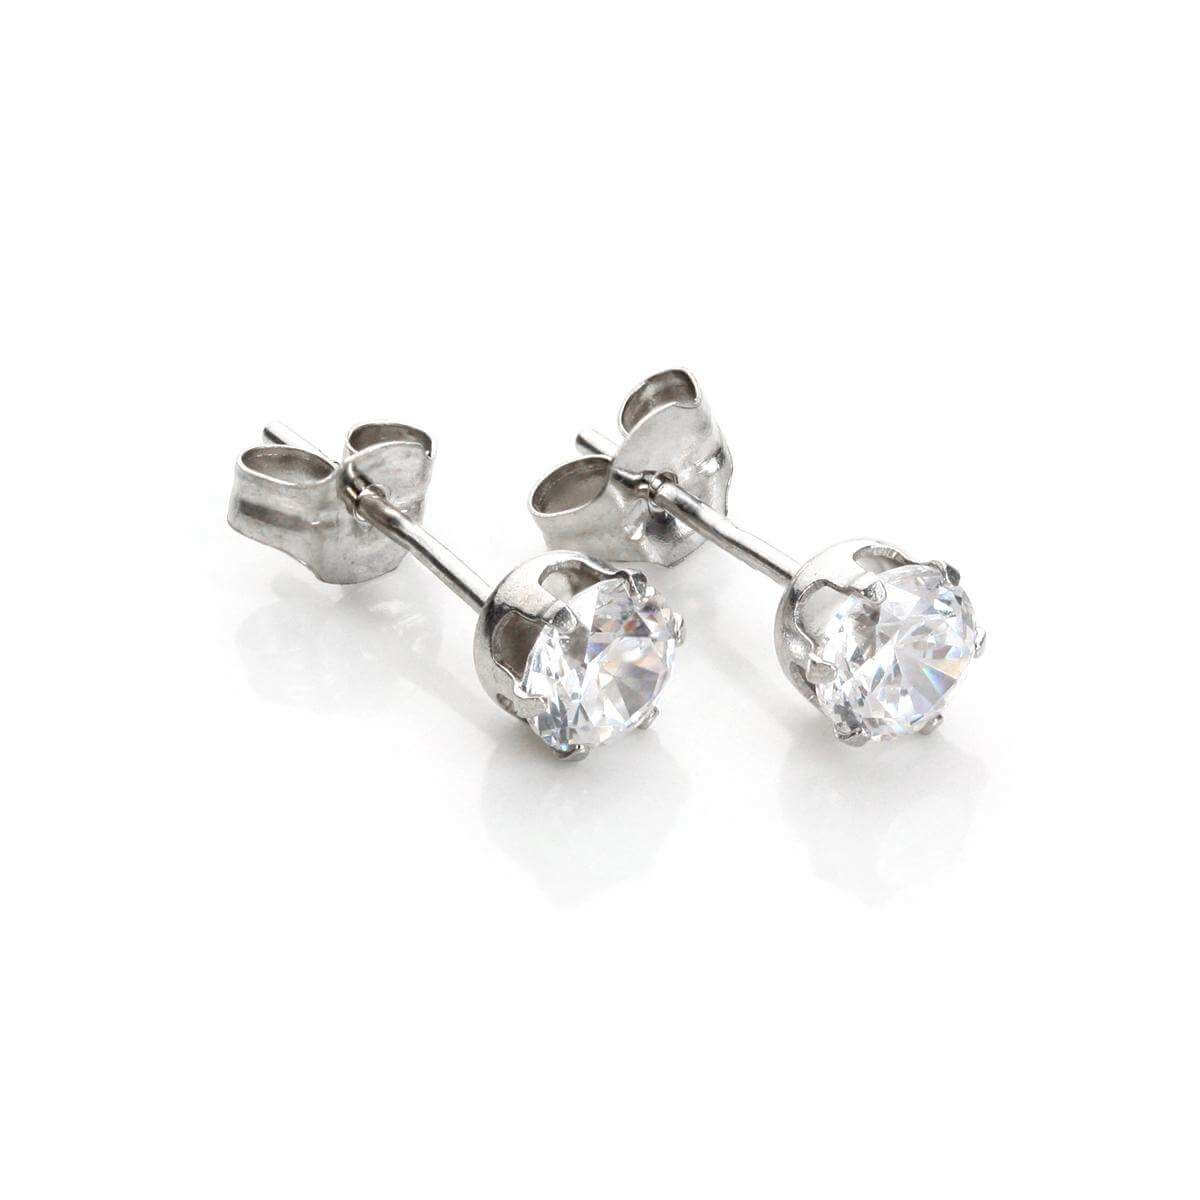 9ct White Gold Clear Crystal 4mm Round Stud Earrings